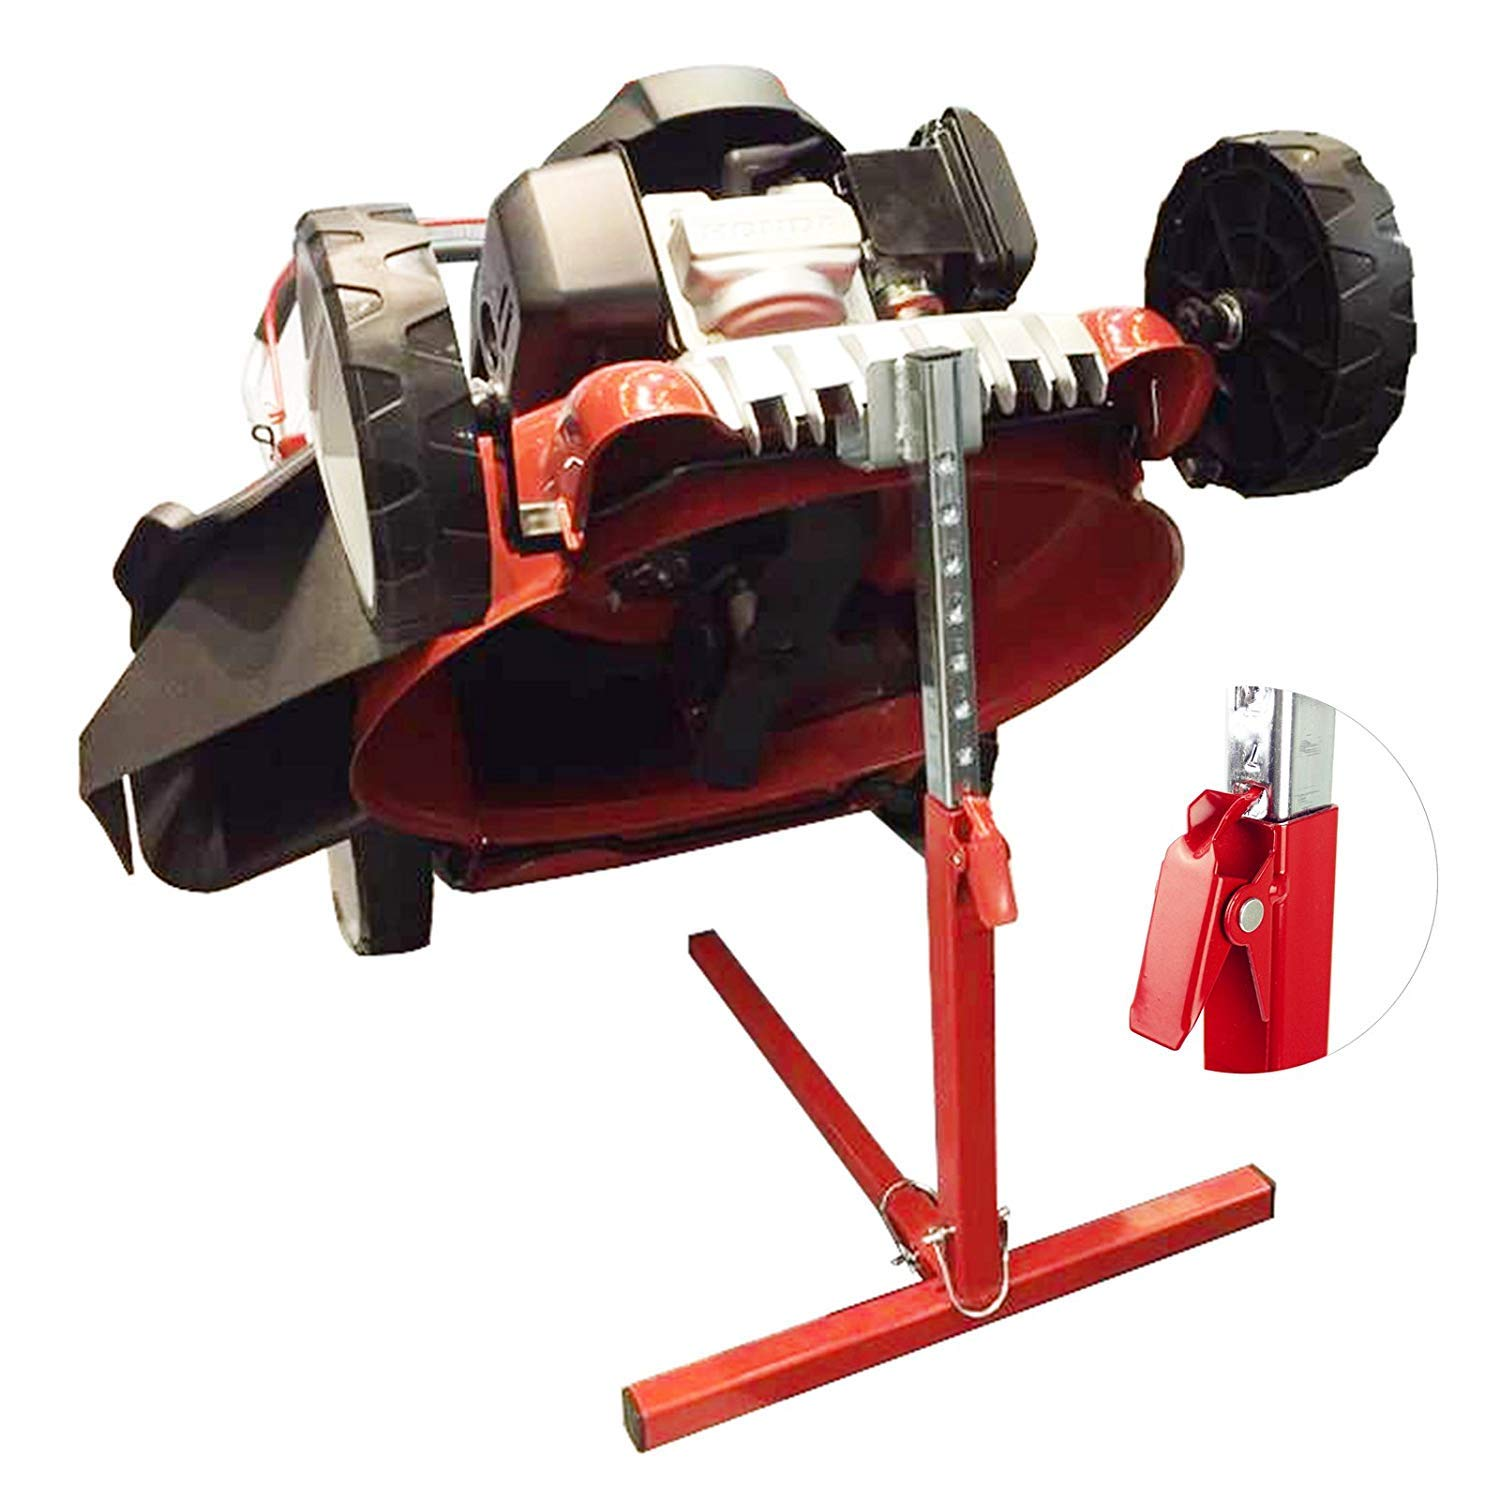 Push Lawn Mower Lift Tools, COPACHI Garden High Duty Holder for Push Mower Lawn With Hight Control Key and Lawn Mower Clearance--22''Hight/110lb Weight Capacity and Keep With 3 Year Warranty